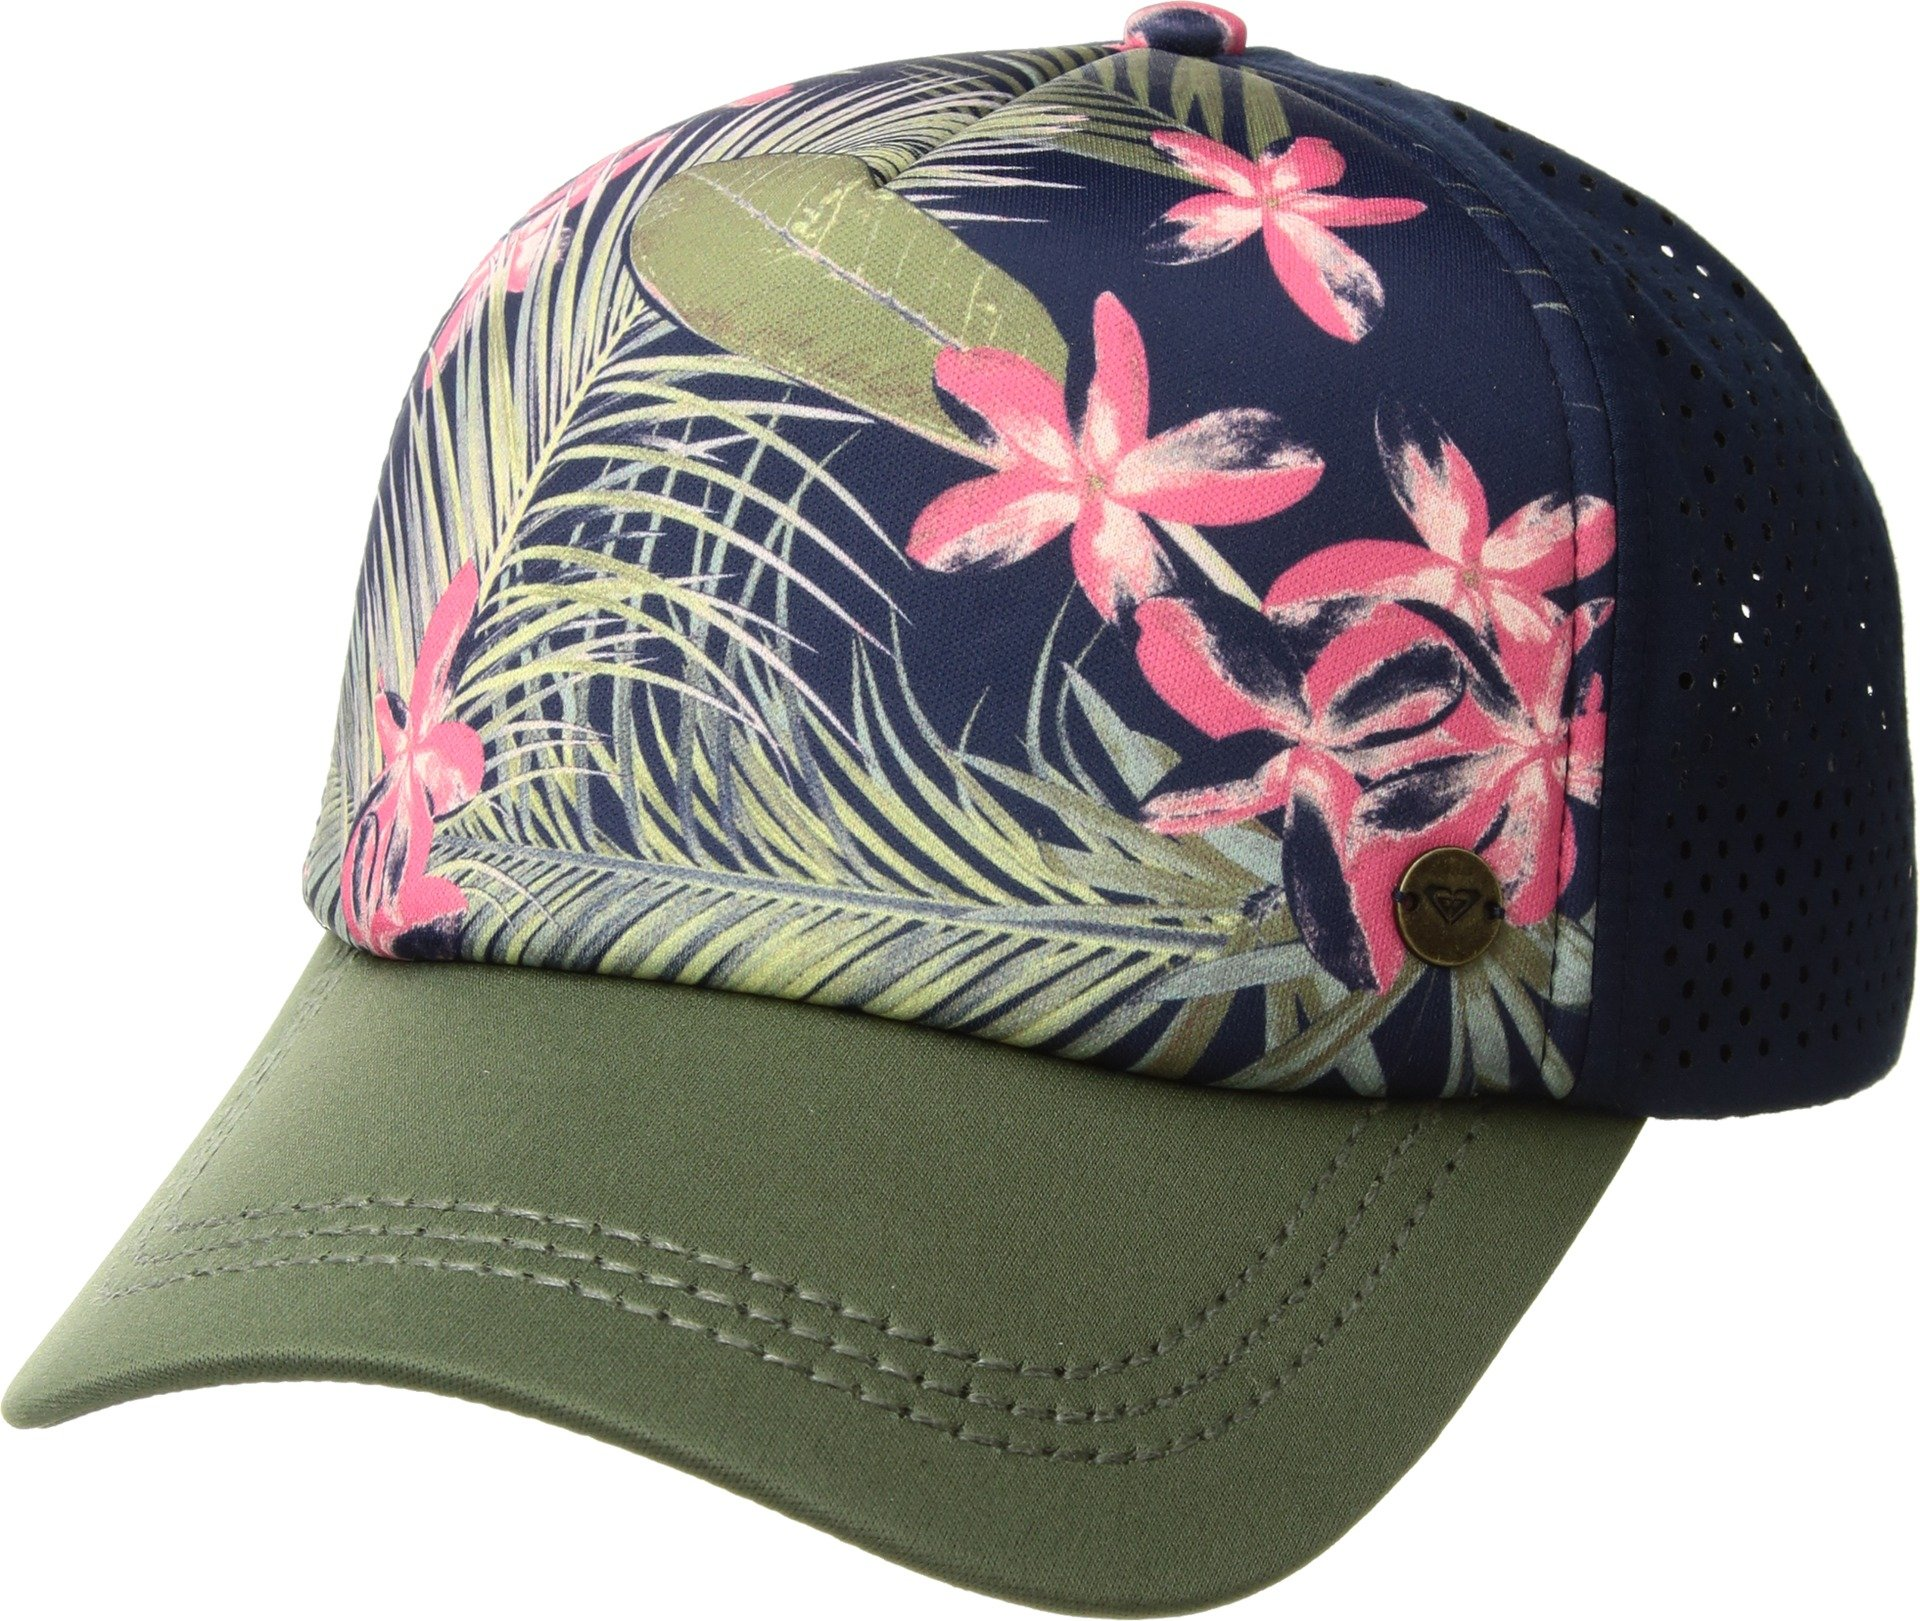 e9189970f2df2 Galleon - Roxy Womens Waves Machines Adjustable Hat One Size Dress Blues  Tiare Flower